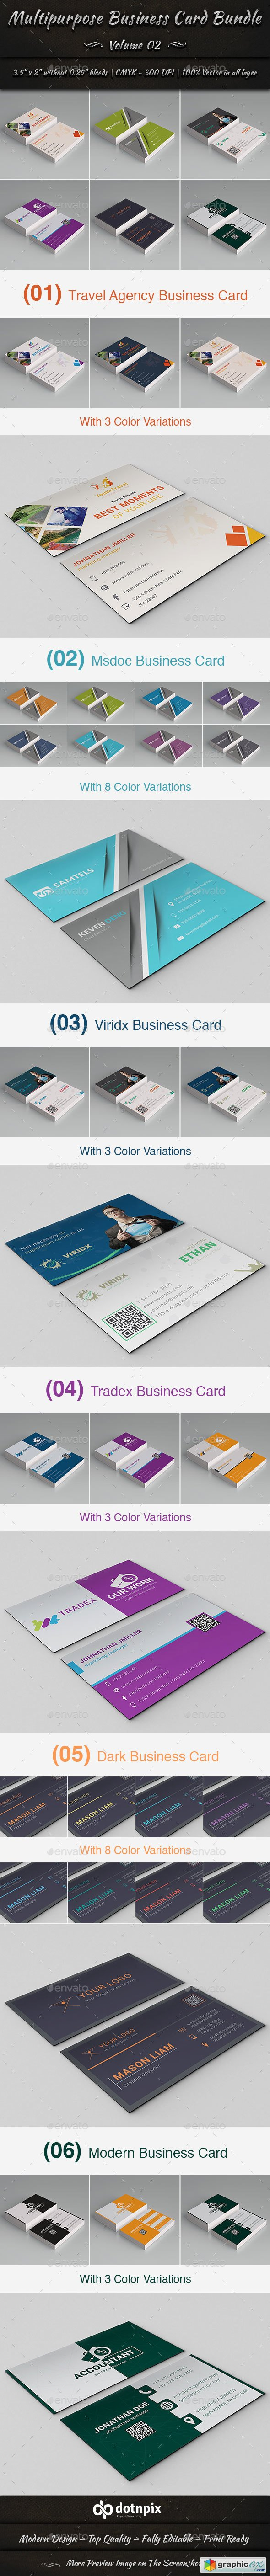 Postcards bussiness card free download vector stock image multipurpose business card bundle volume 2 13548331 colourmoves Images